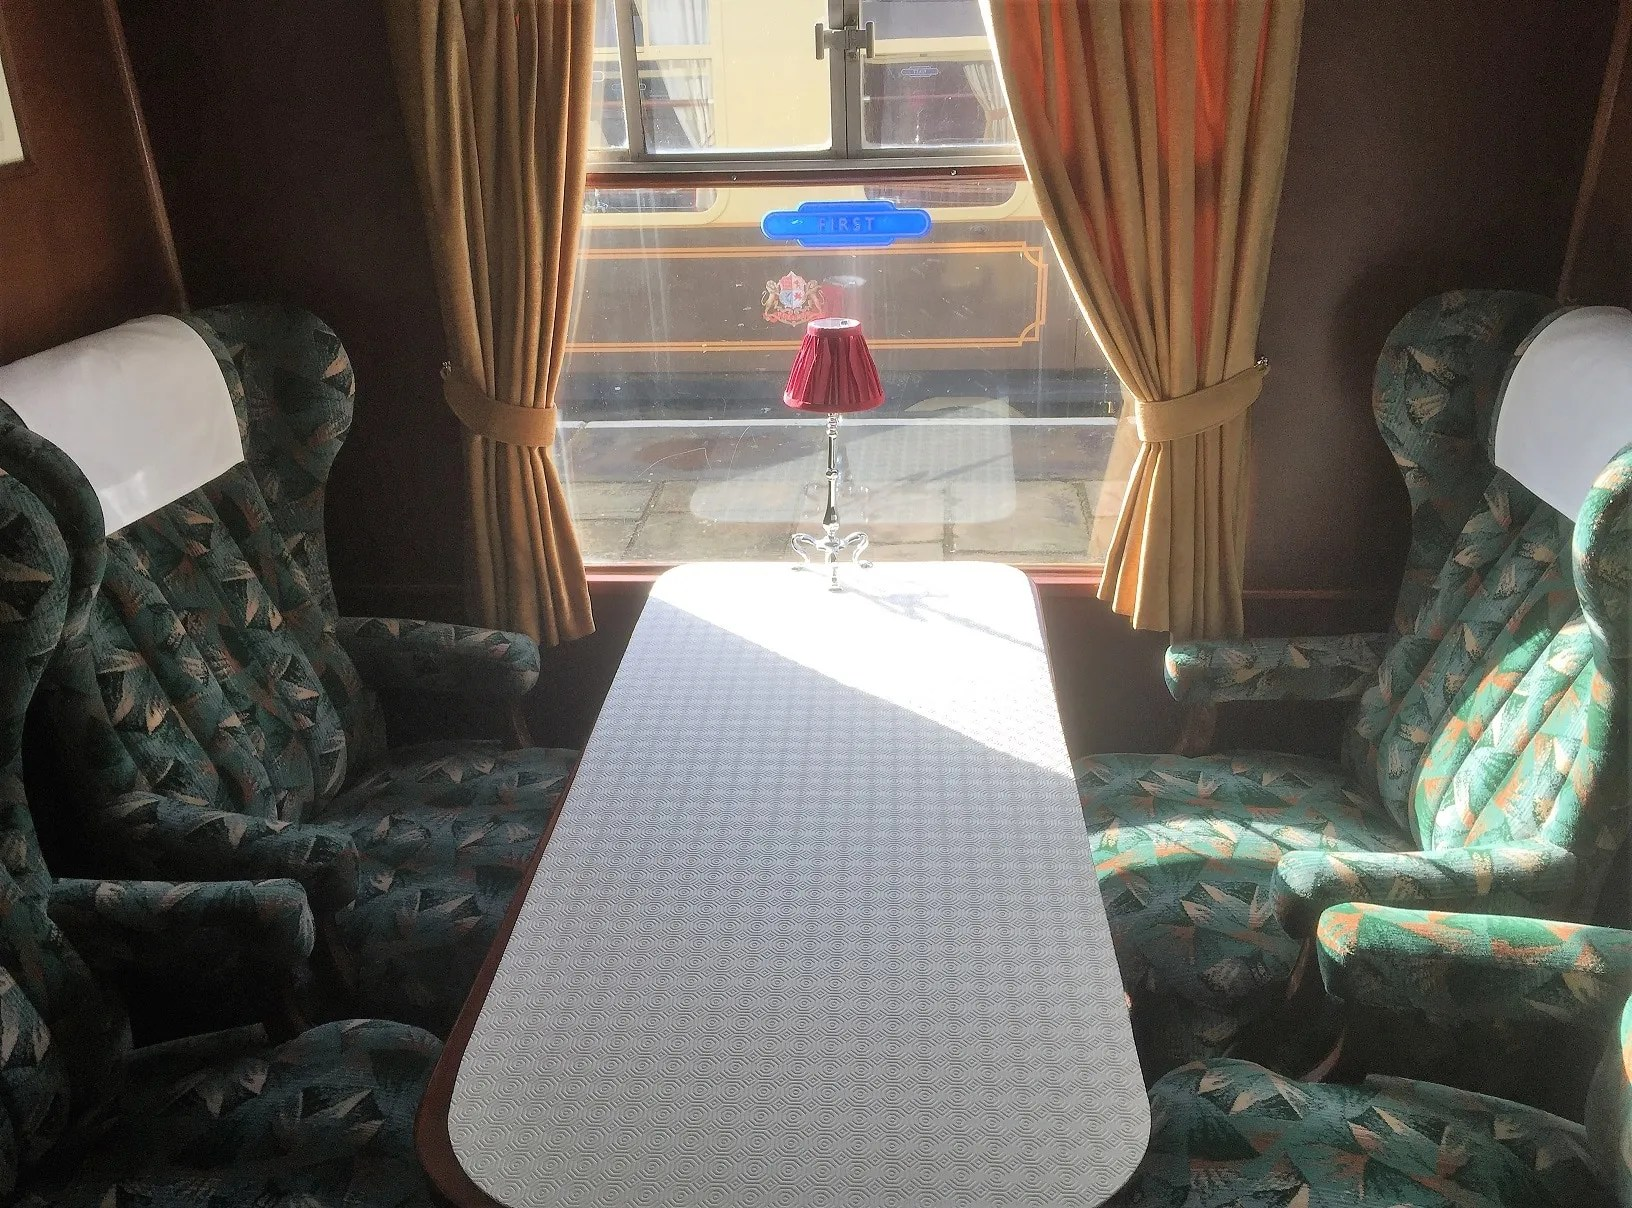 railway carriage restaurant CK M15626 Oliver showing loose chairs that have replaced the bench seating